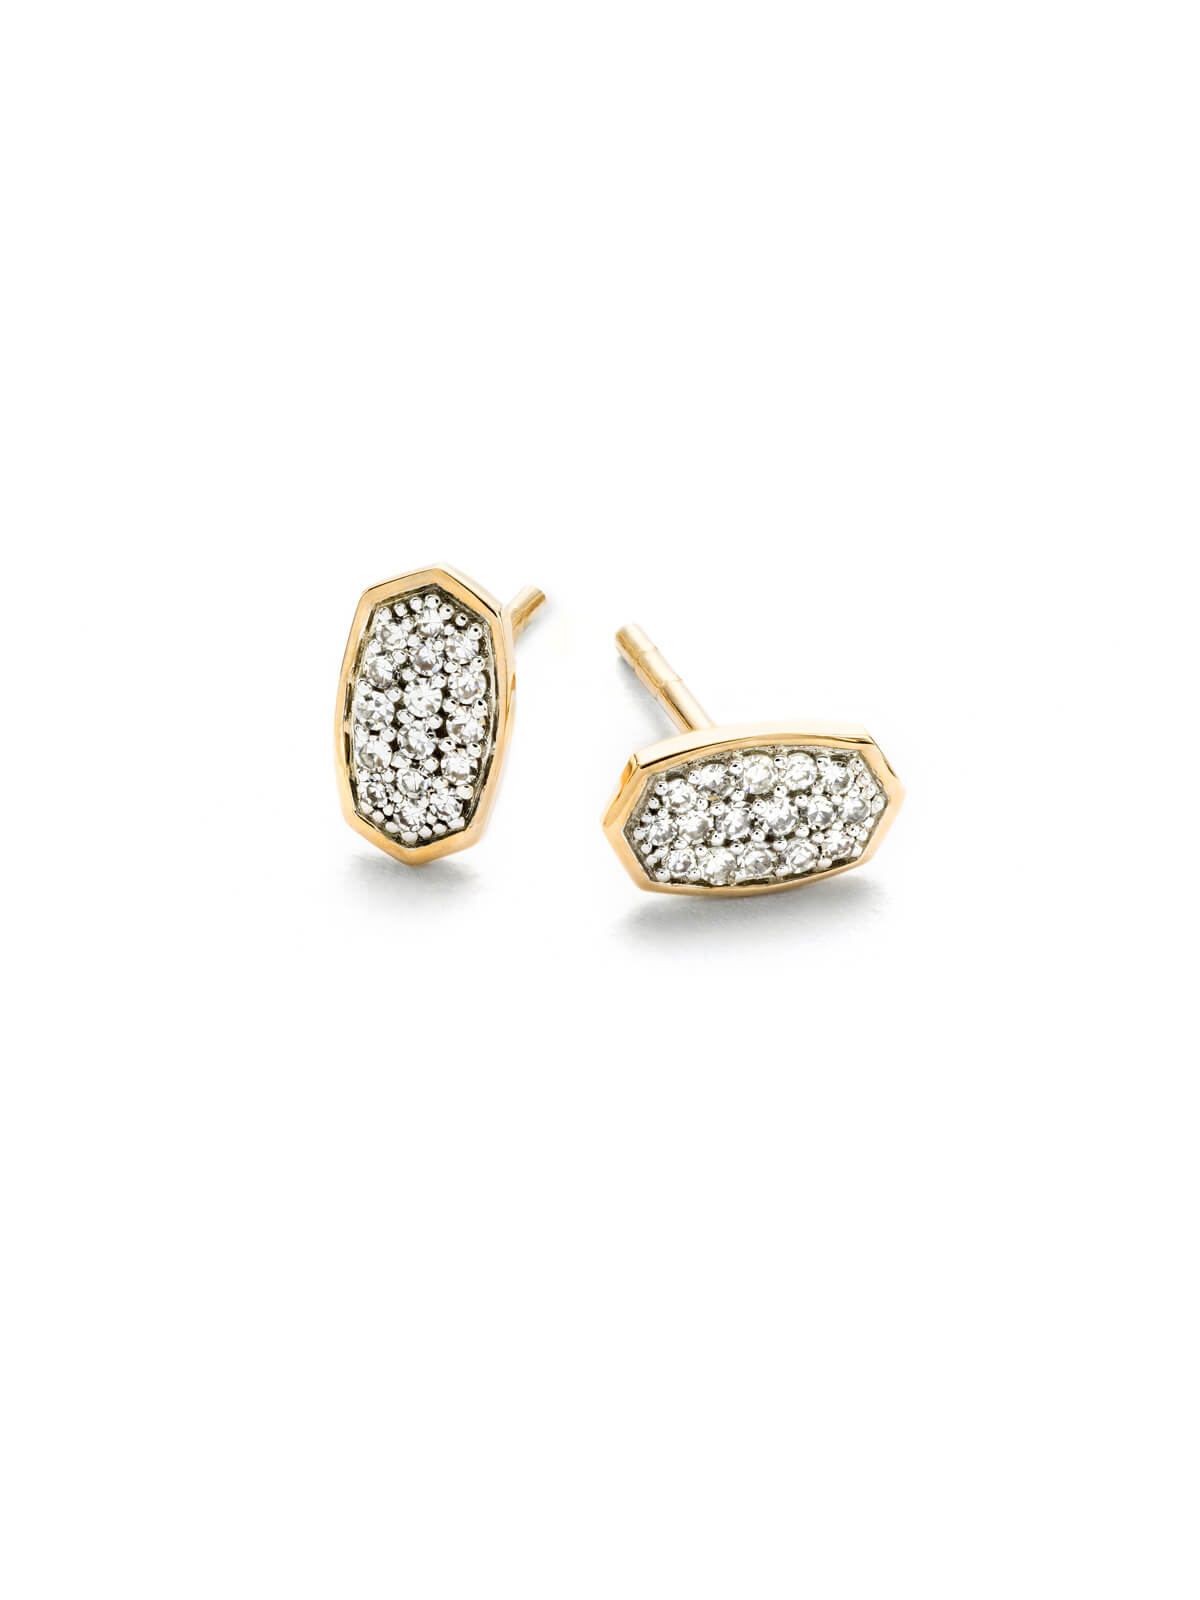 c5599c00c Images. Gypsy Stud Earrings in White Diamond and 14k Yellow Gold ...